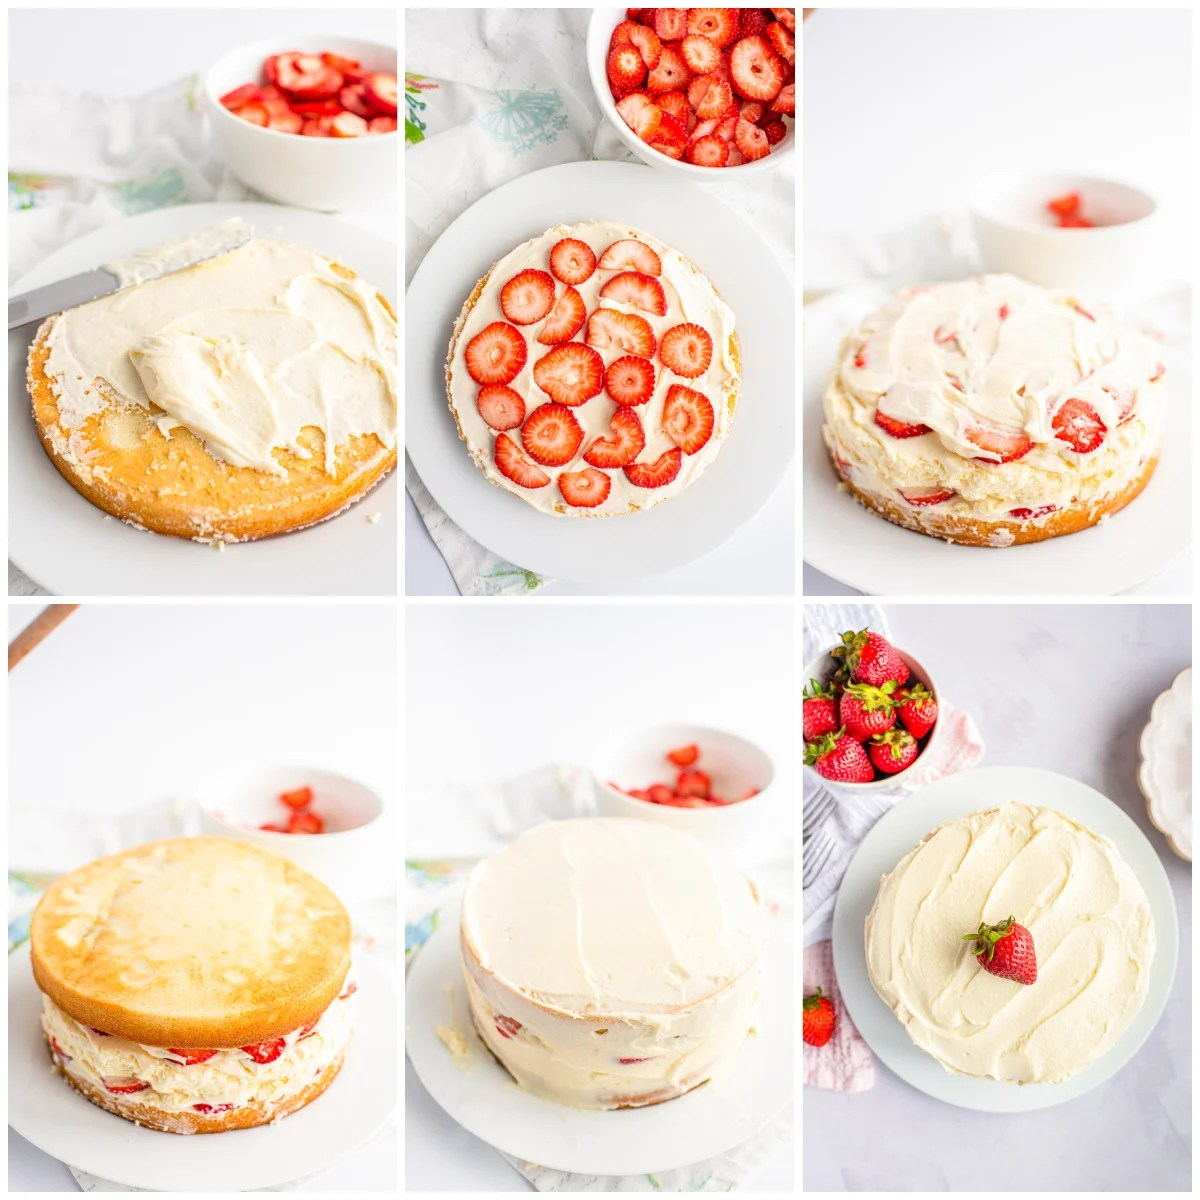 Step by step photos on how to assemble a Cheesecake Cake